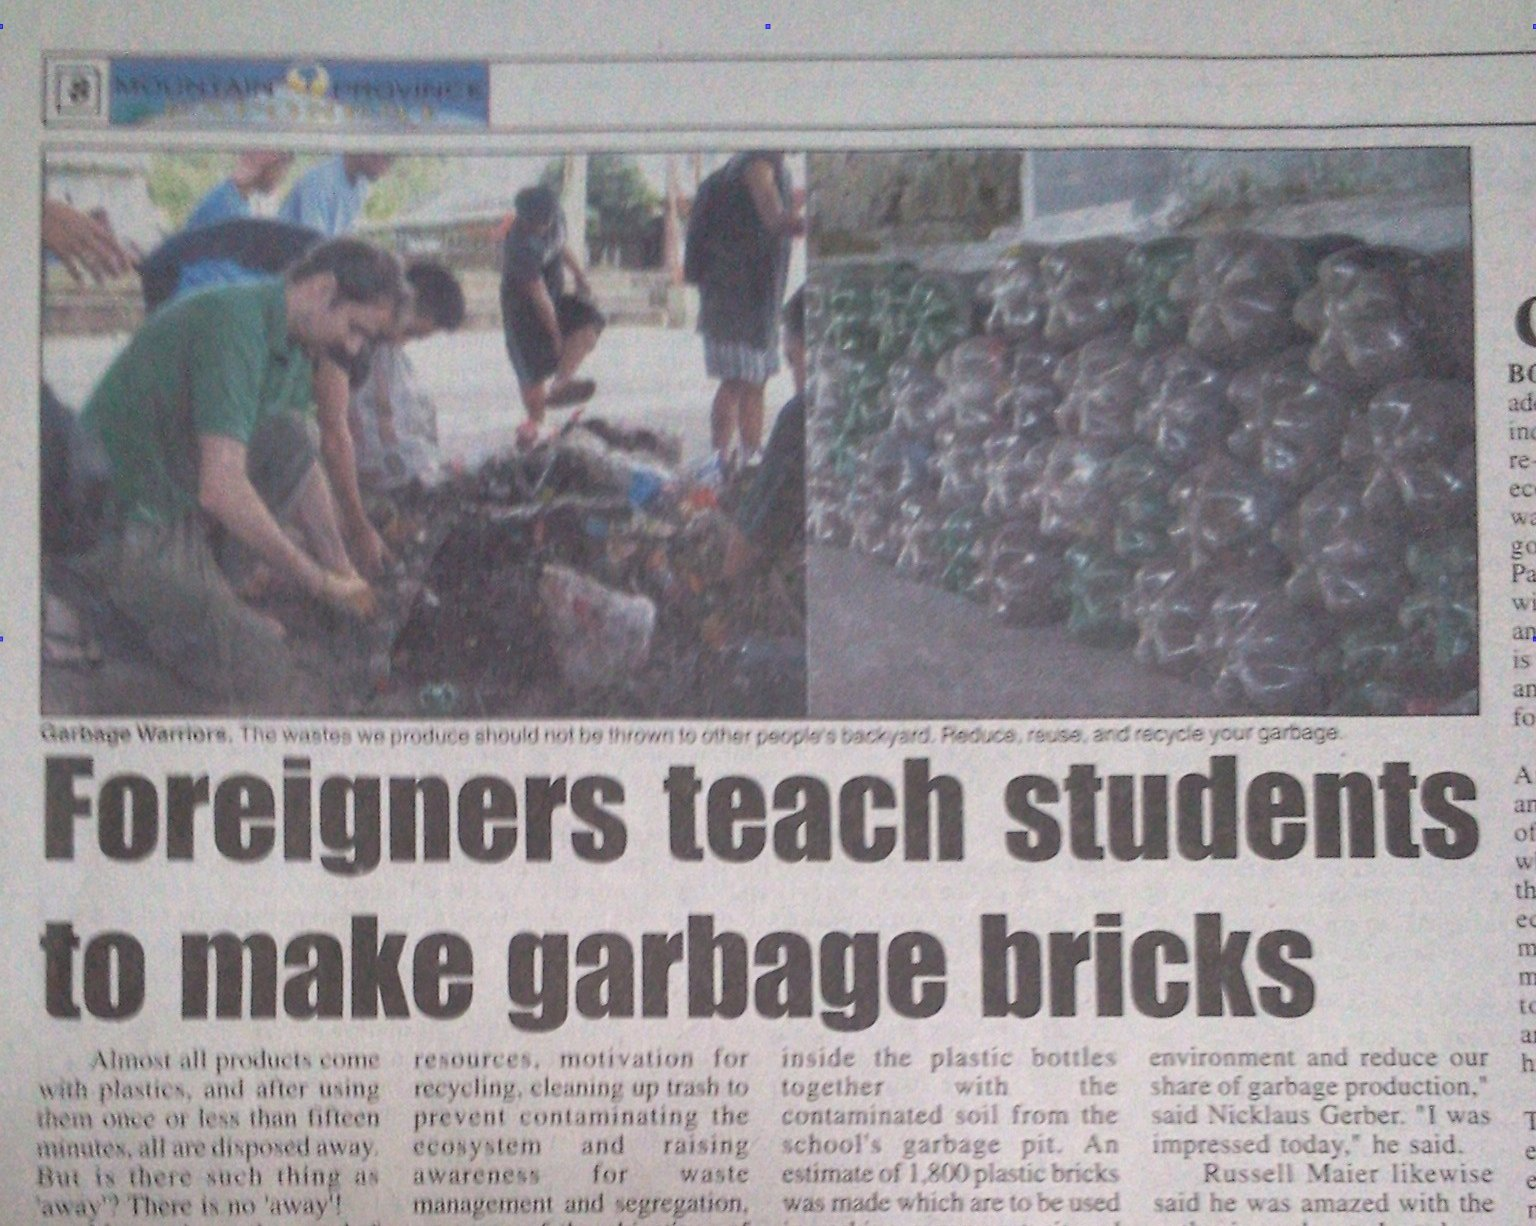 Garbage Heroes – bottle brick making featured in local paper.